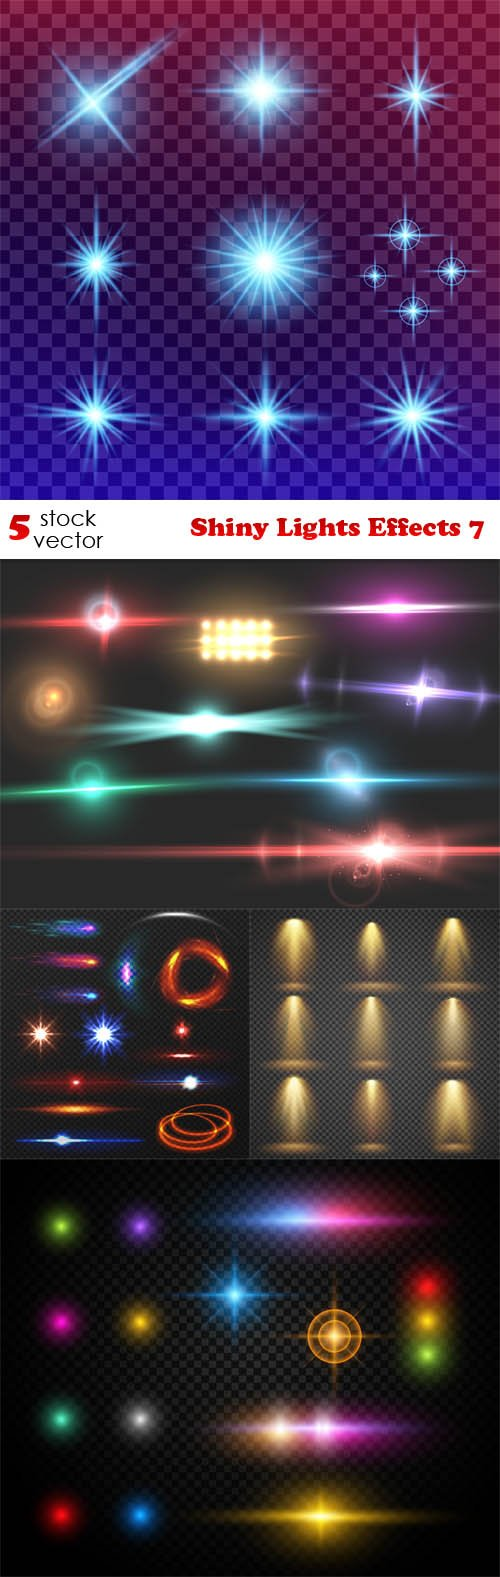 Vectors - Shiny Lights Effects 7